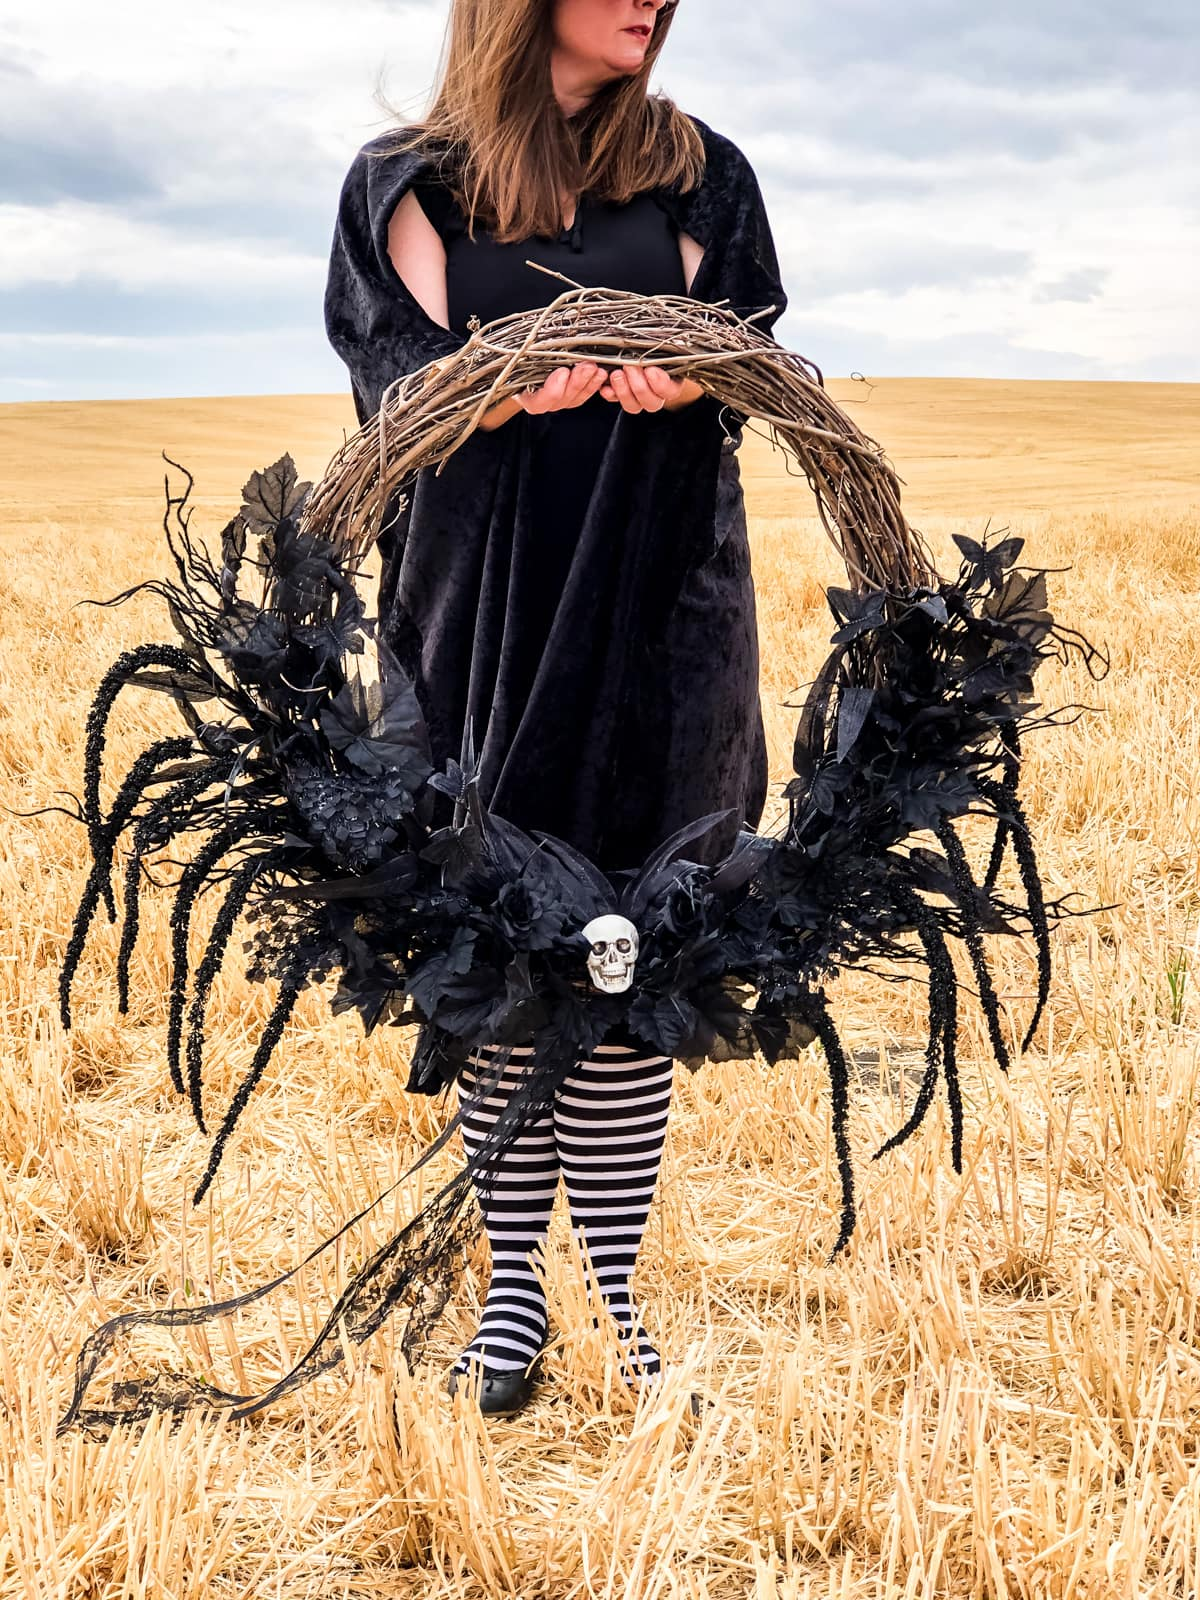 A picture of a lady in a wheat field holding a black Halloween wreath